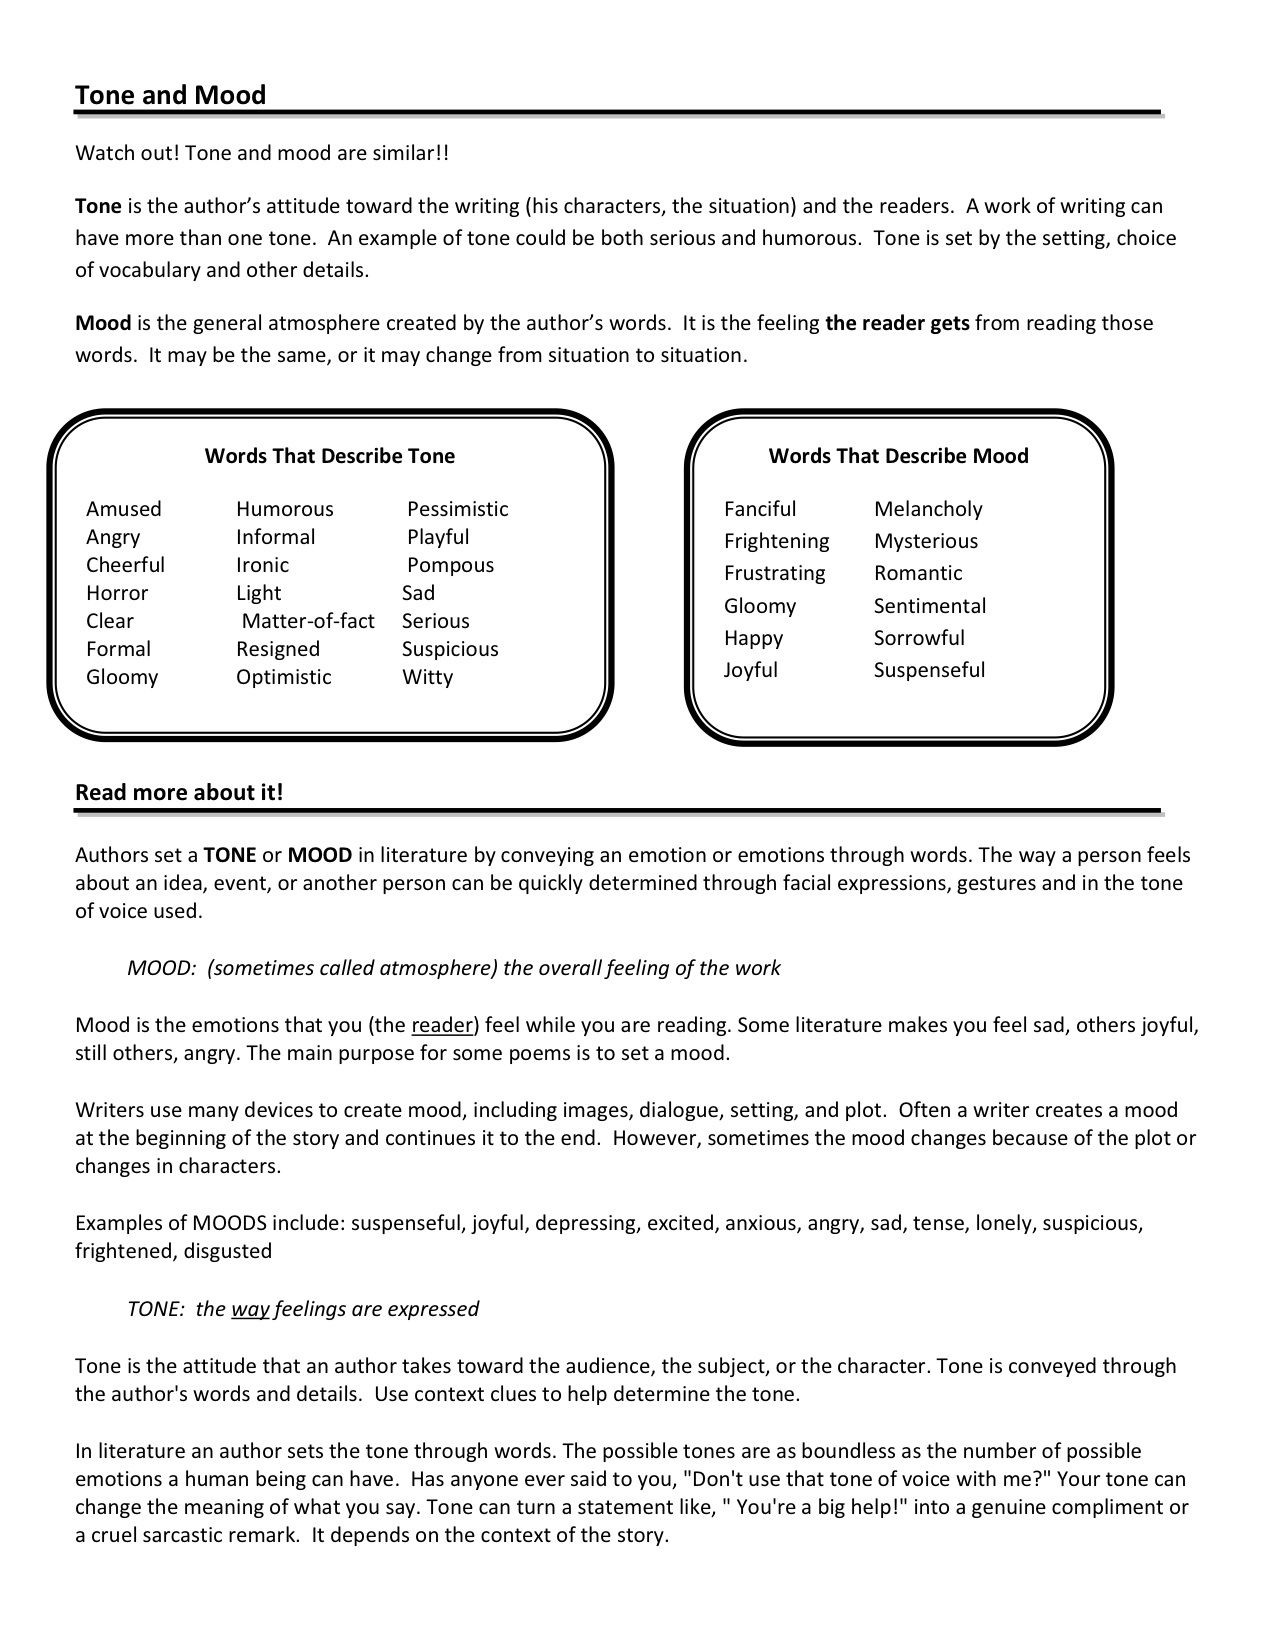 Worksheets Mood Worksheets tone and mood worksheets google search teachinglibrary search